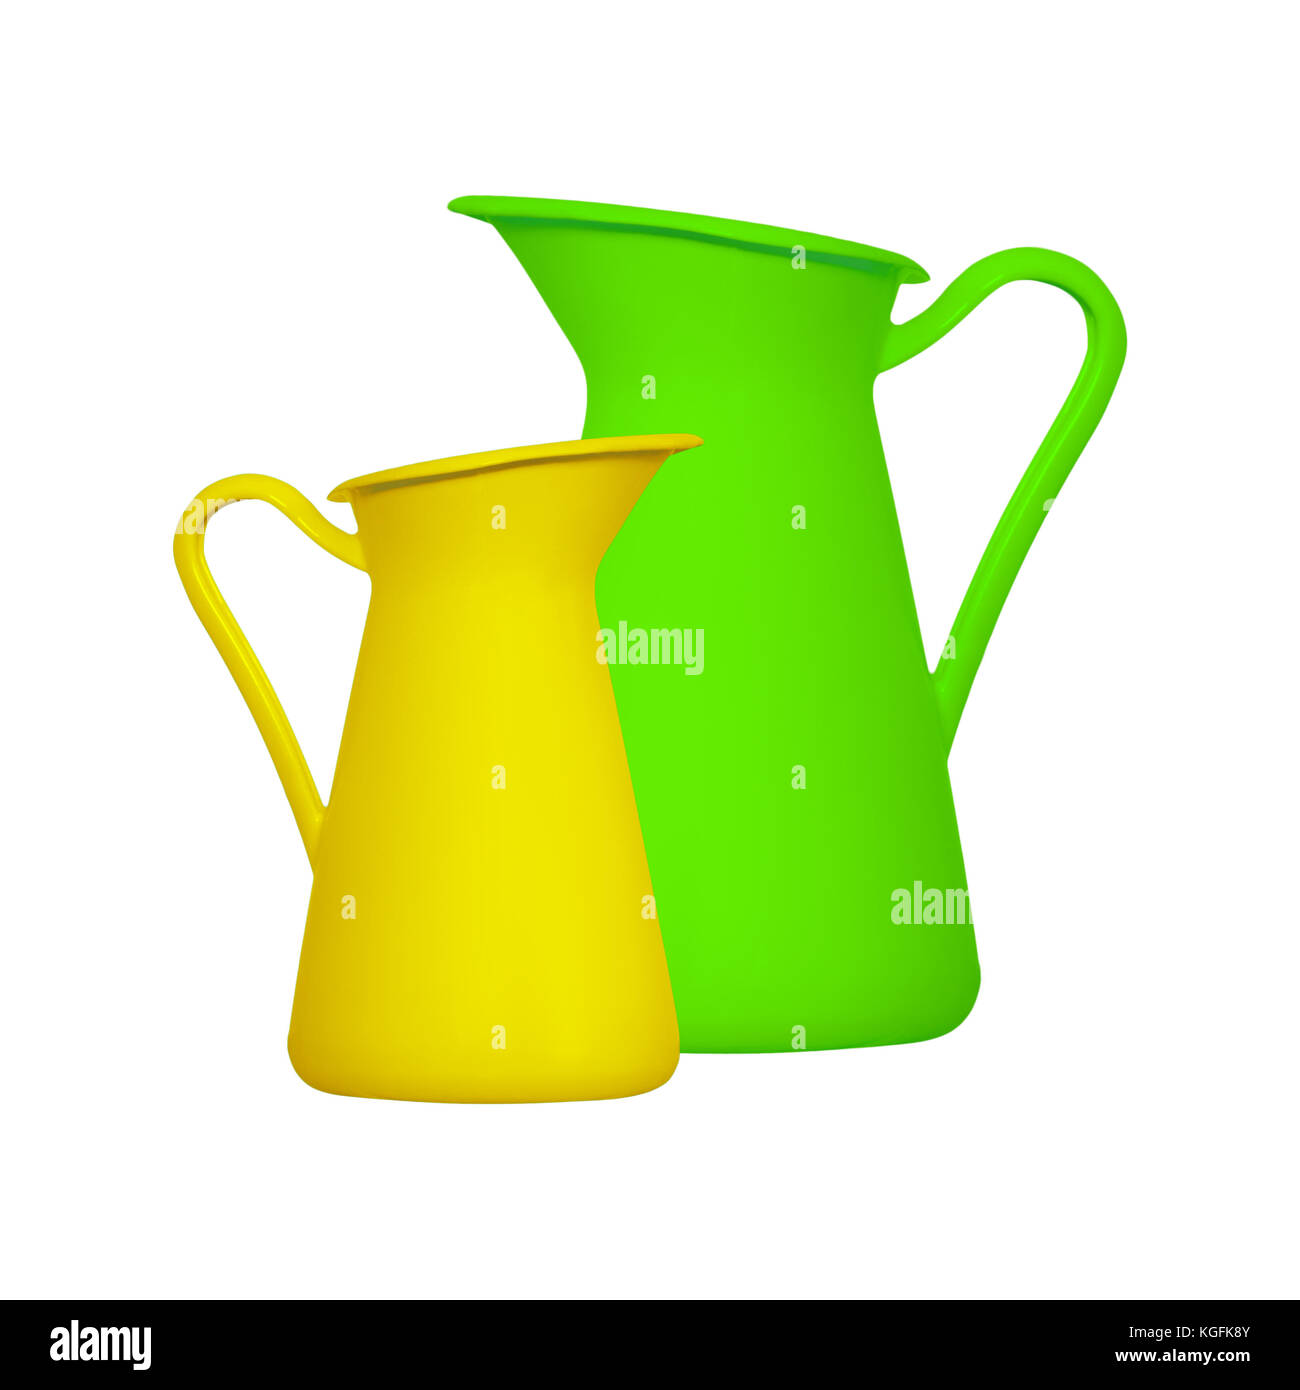 Storage for liquids - Green and yellow jug ewer on a white background. Isolated Stock Photo